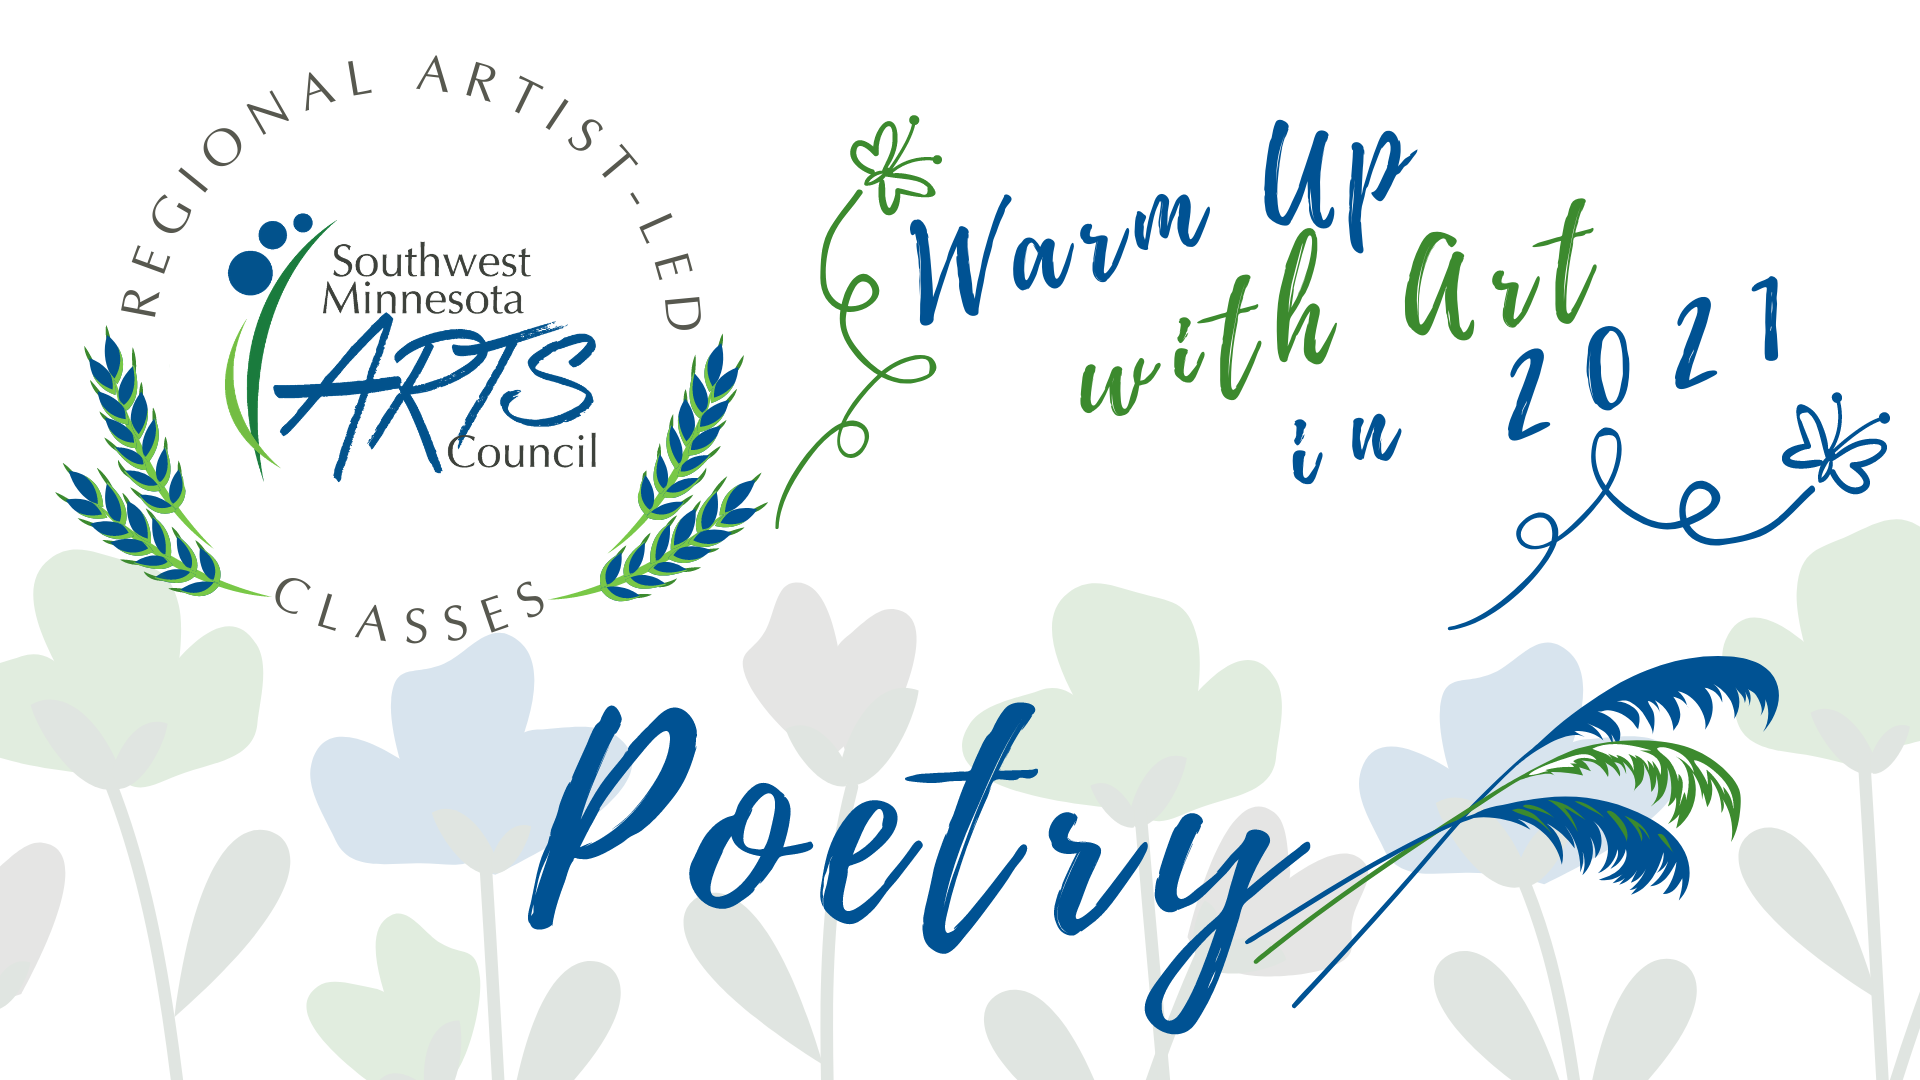 Regional Artist-led Classes, Southwest Minnesota Arts Council. Warm Up with Art in 2021. Poetry.